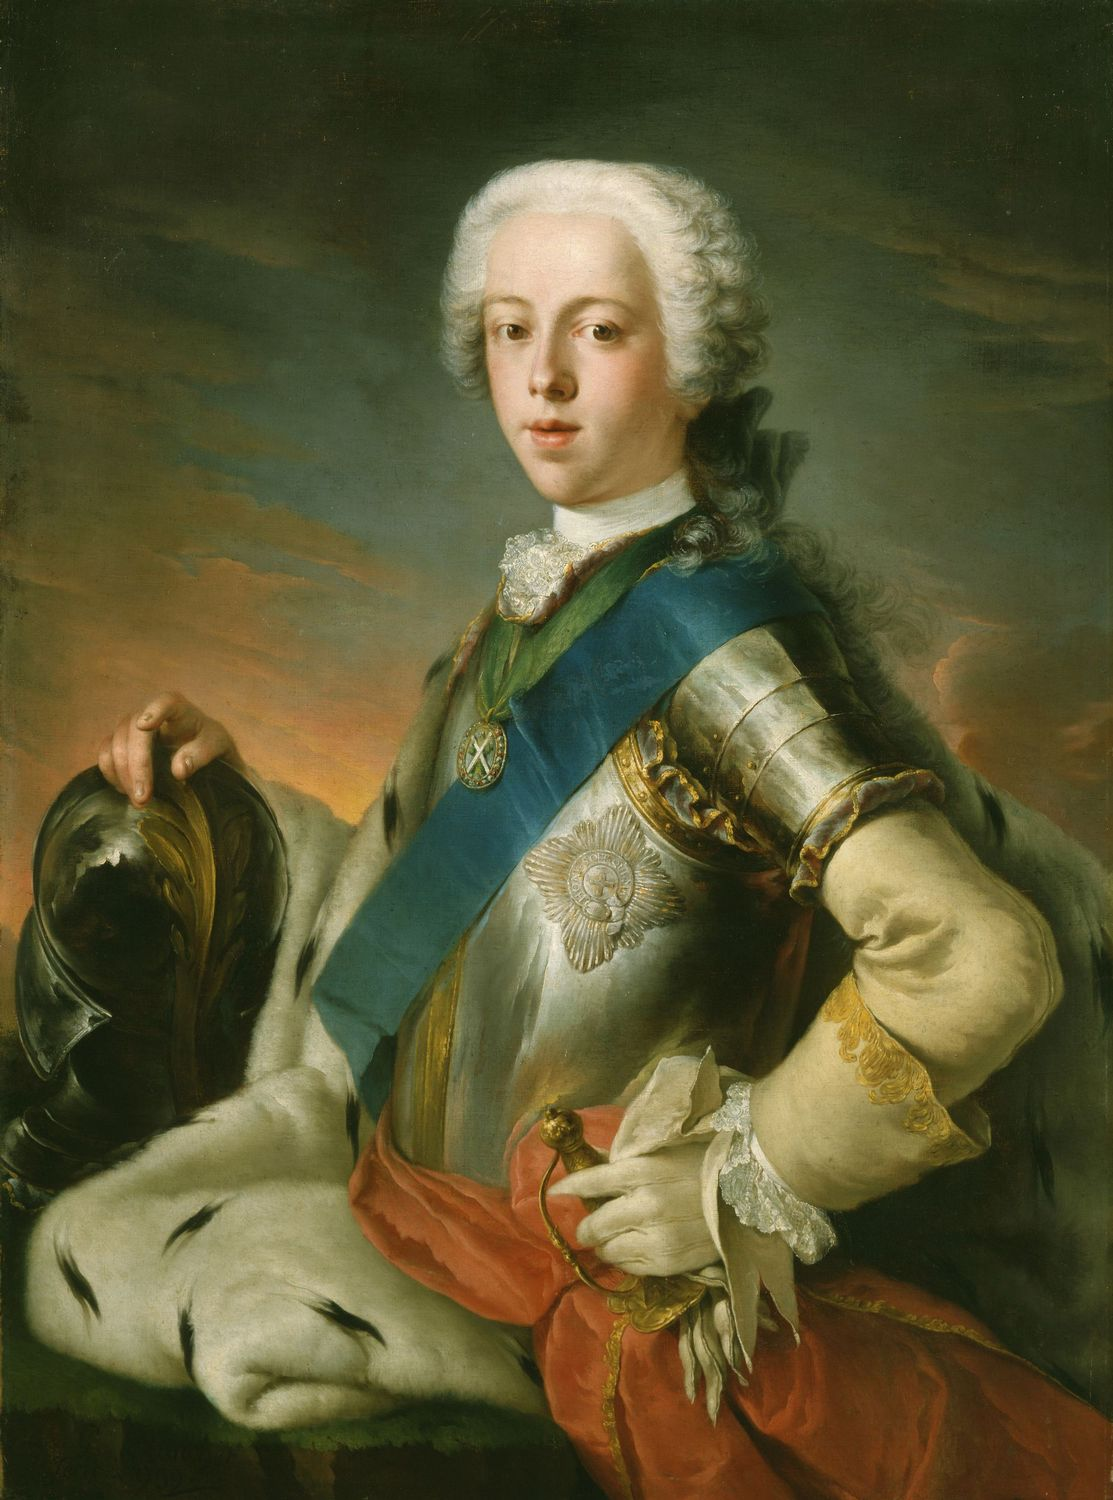 Blanchet, Prince Charles Edward Stuart, 1739, oil on canvas, The Royal Collection